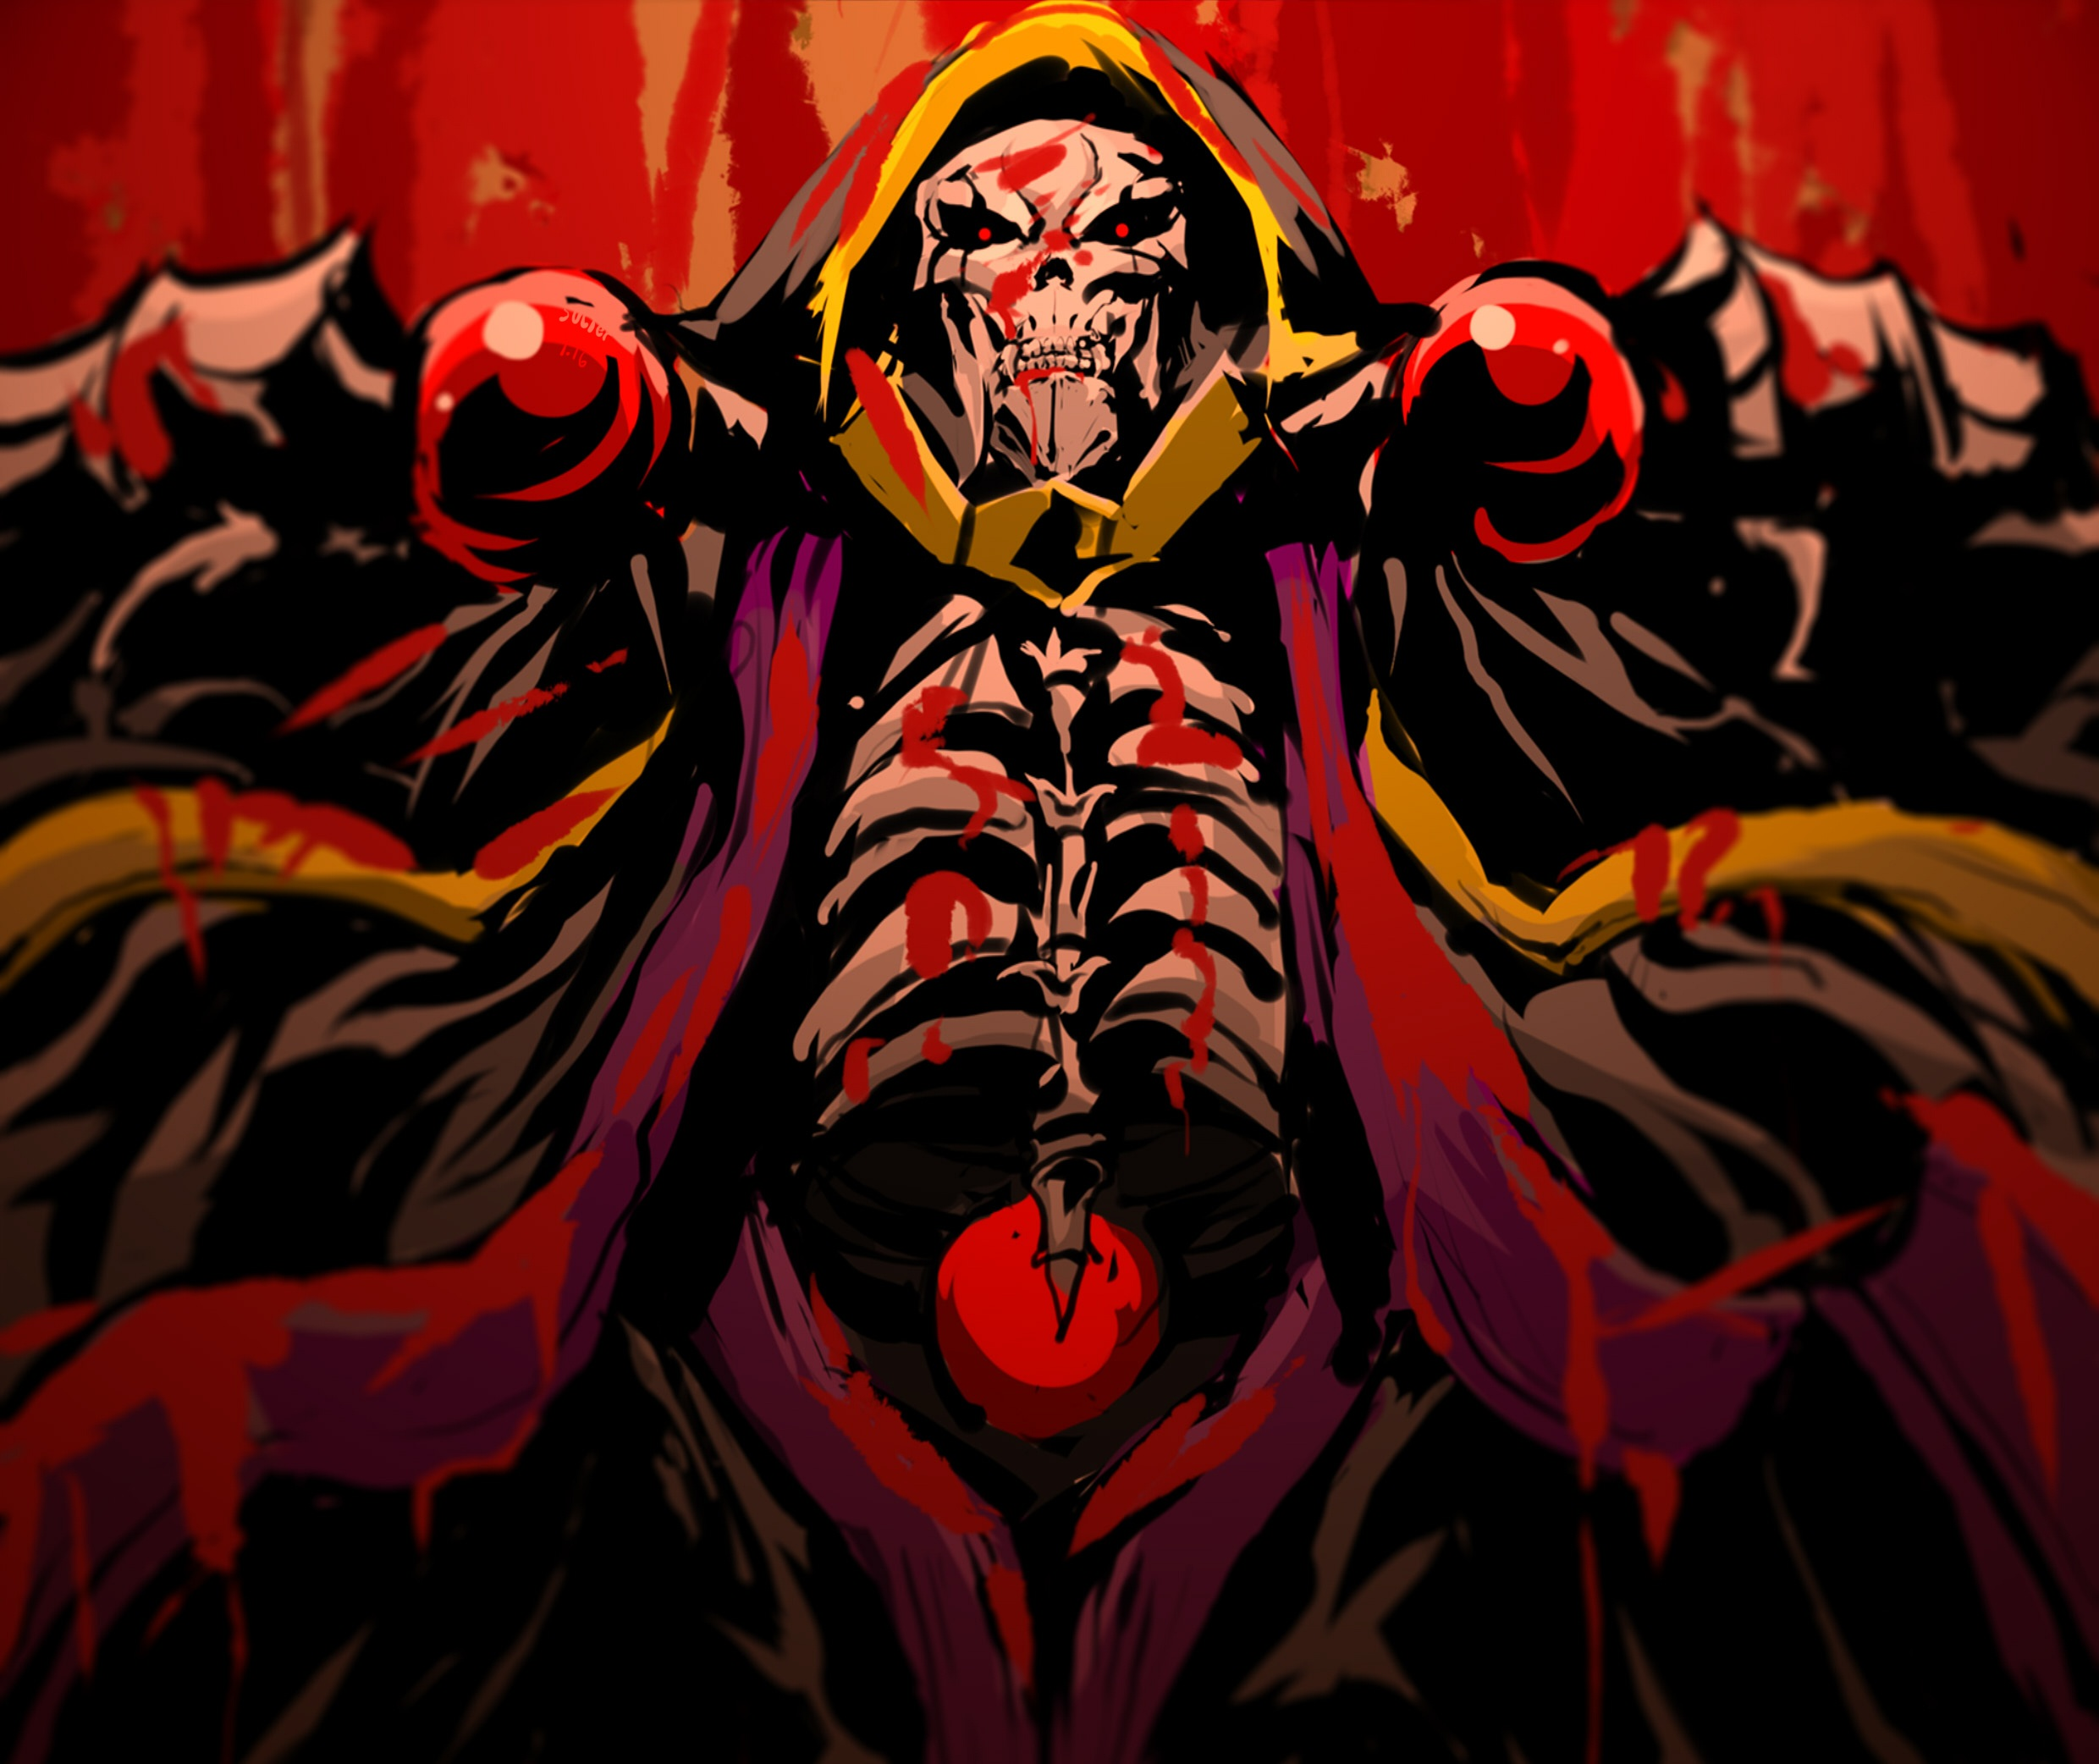 Anime Ainz Ooal Gown Overlord Art Wallpaper